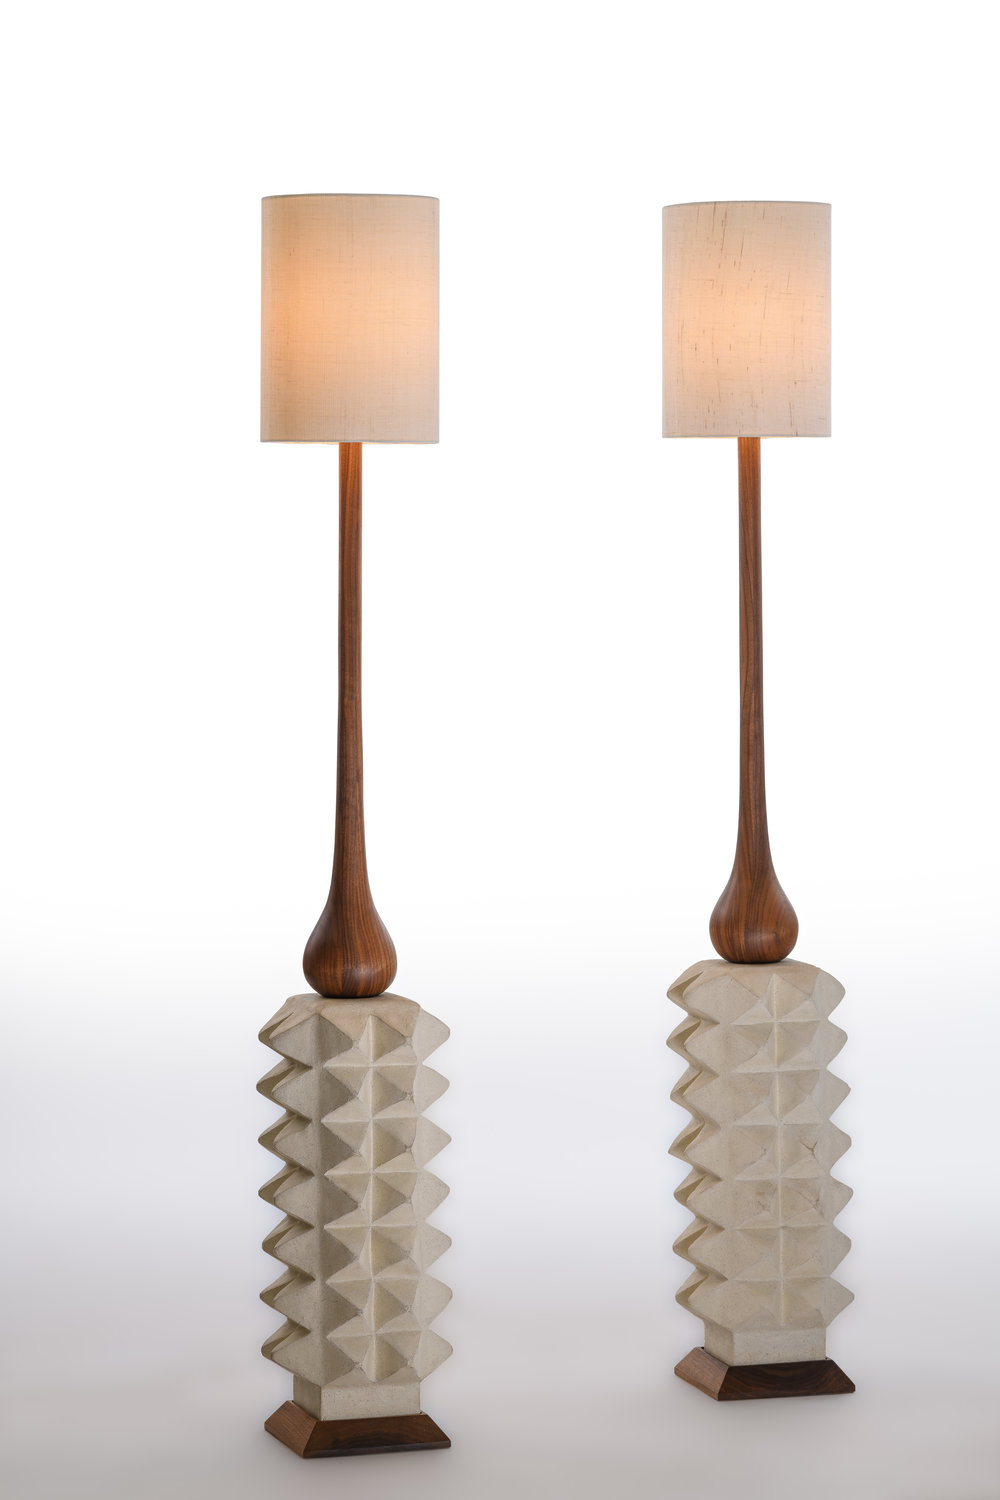 "Apex Lamps (Set of 2)  Collaboration between Shizue Imai and Chad Jensen  Hand-Turned Walnut, Glazed Stoneware, Dimmer Switch Included, 57"" x 8.5"" x 8.5"" ea. / Unique"